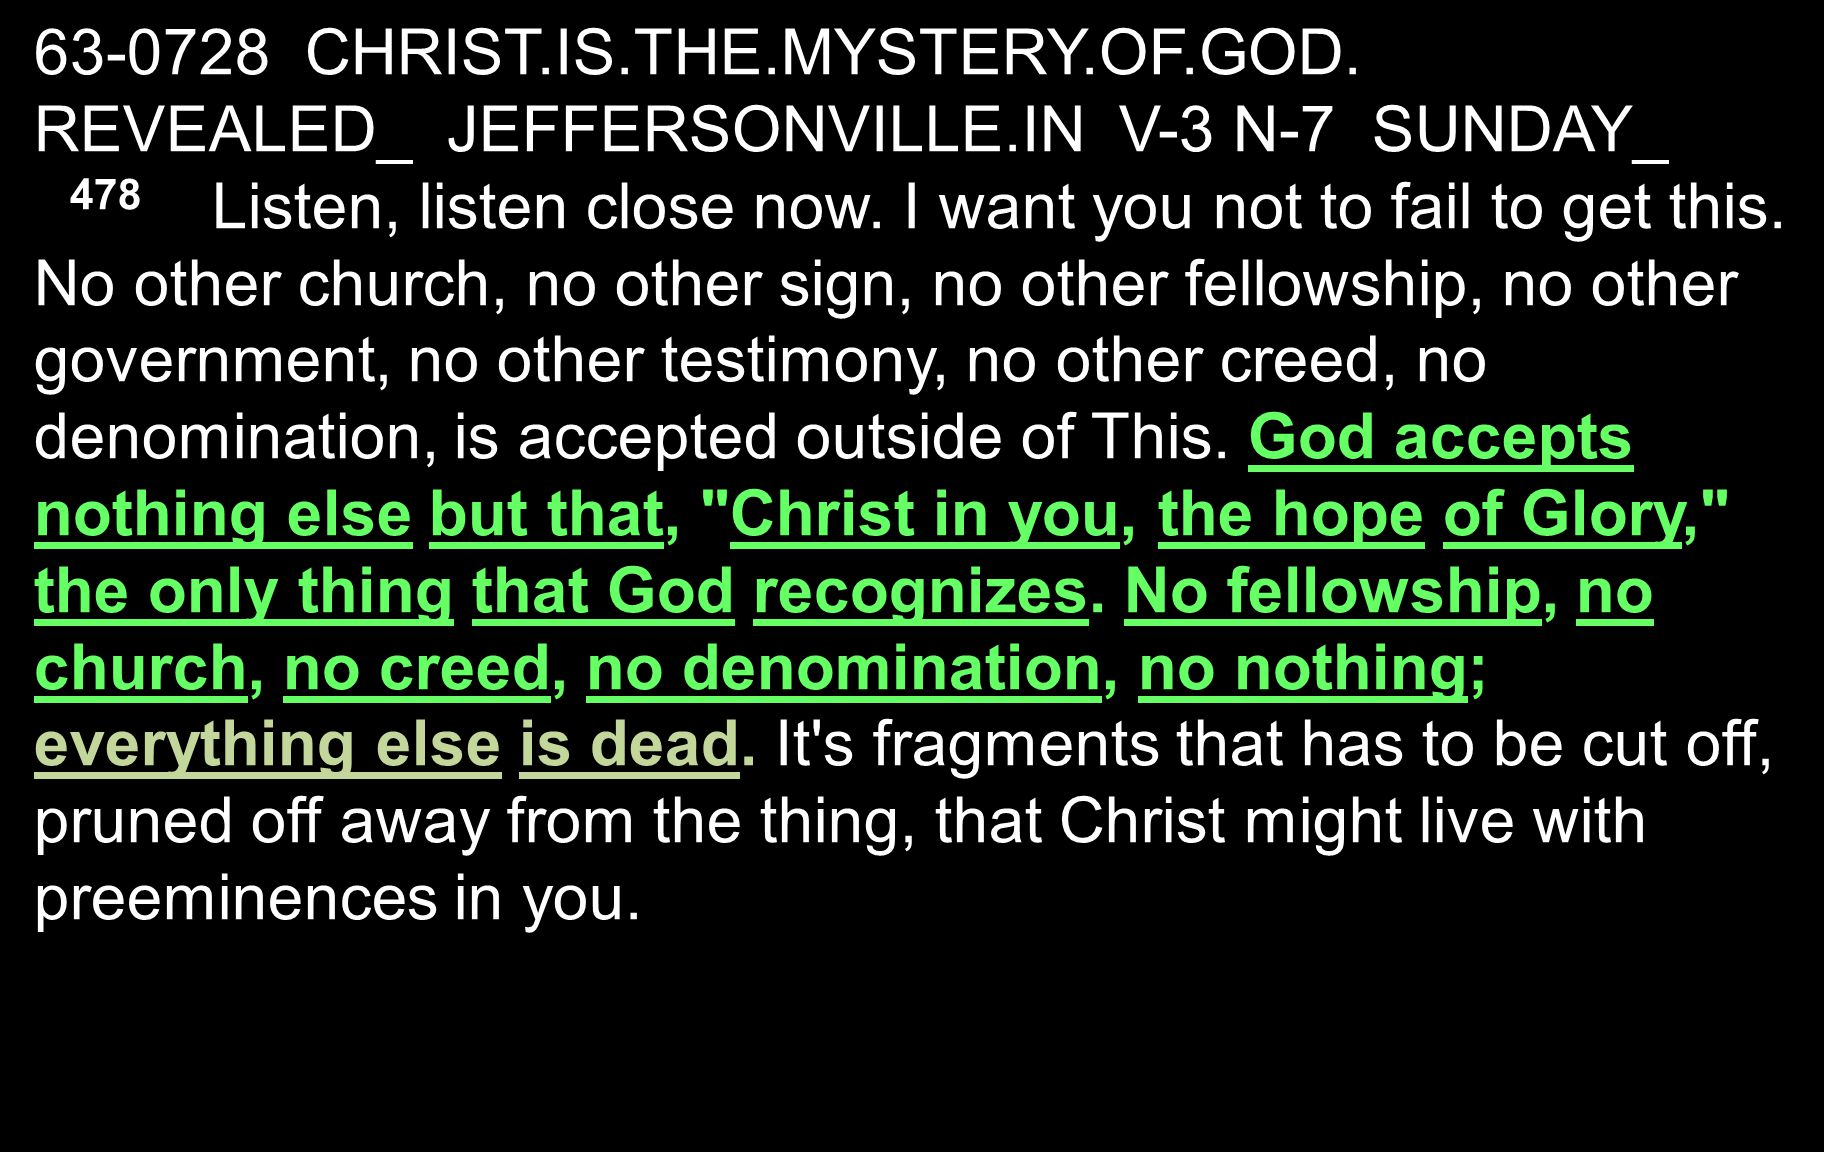 63-0728 CHRIST.IS.THE.MYSTERY.OF.GOD. REVEALED_ JEFFERSONVILLE.IN V-3 N-7 SUNDAY_ 478 Listen, listen close now. I want you not to fail to get this. No